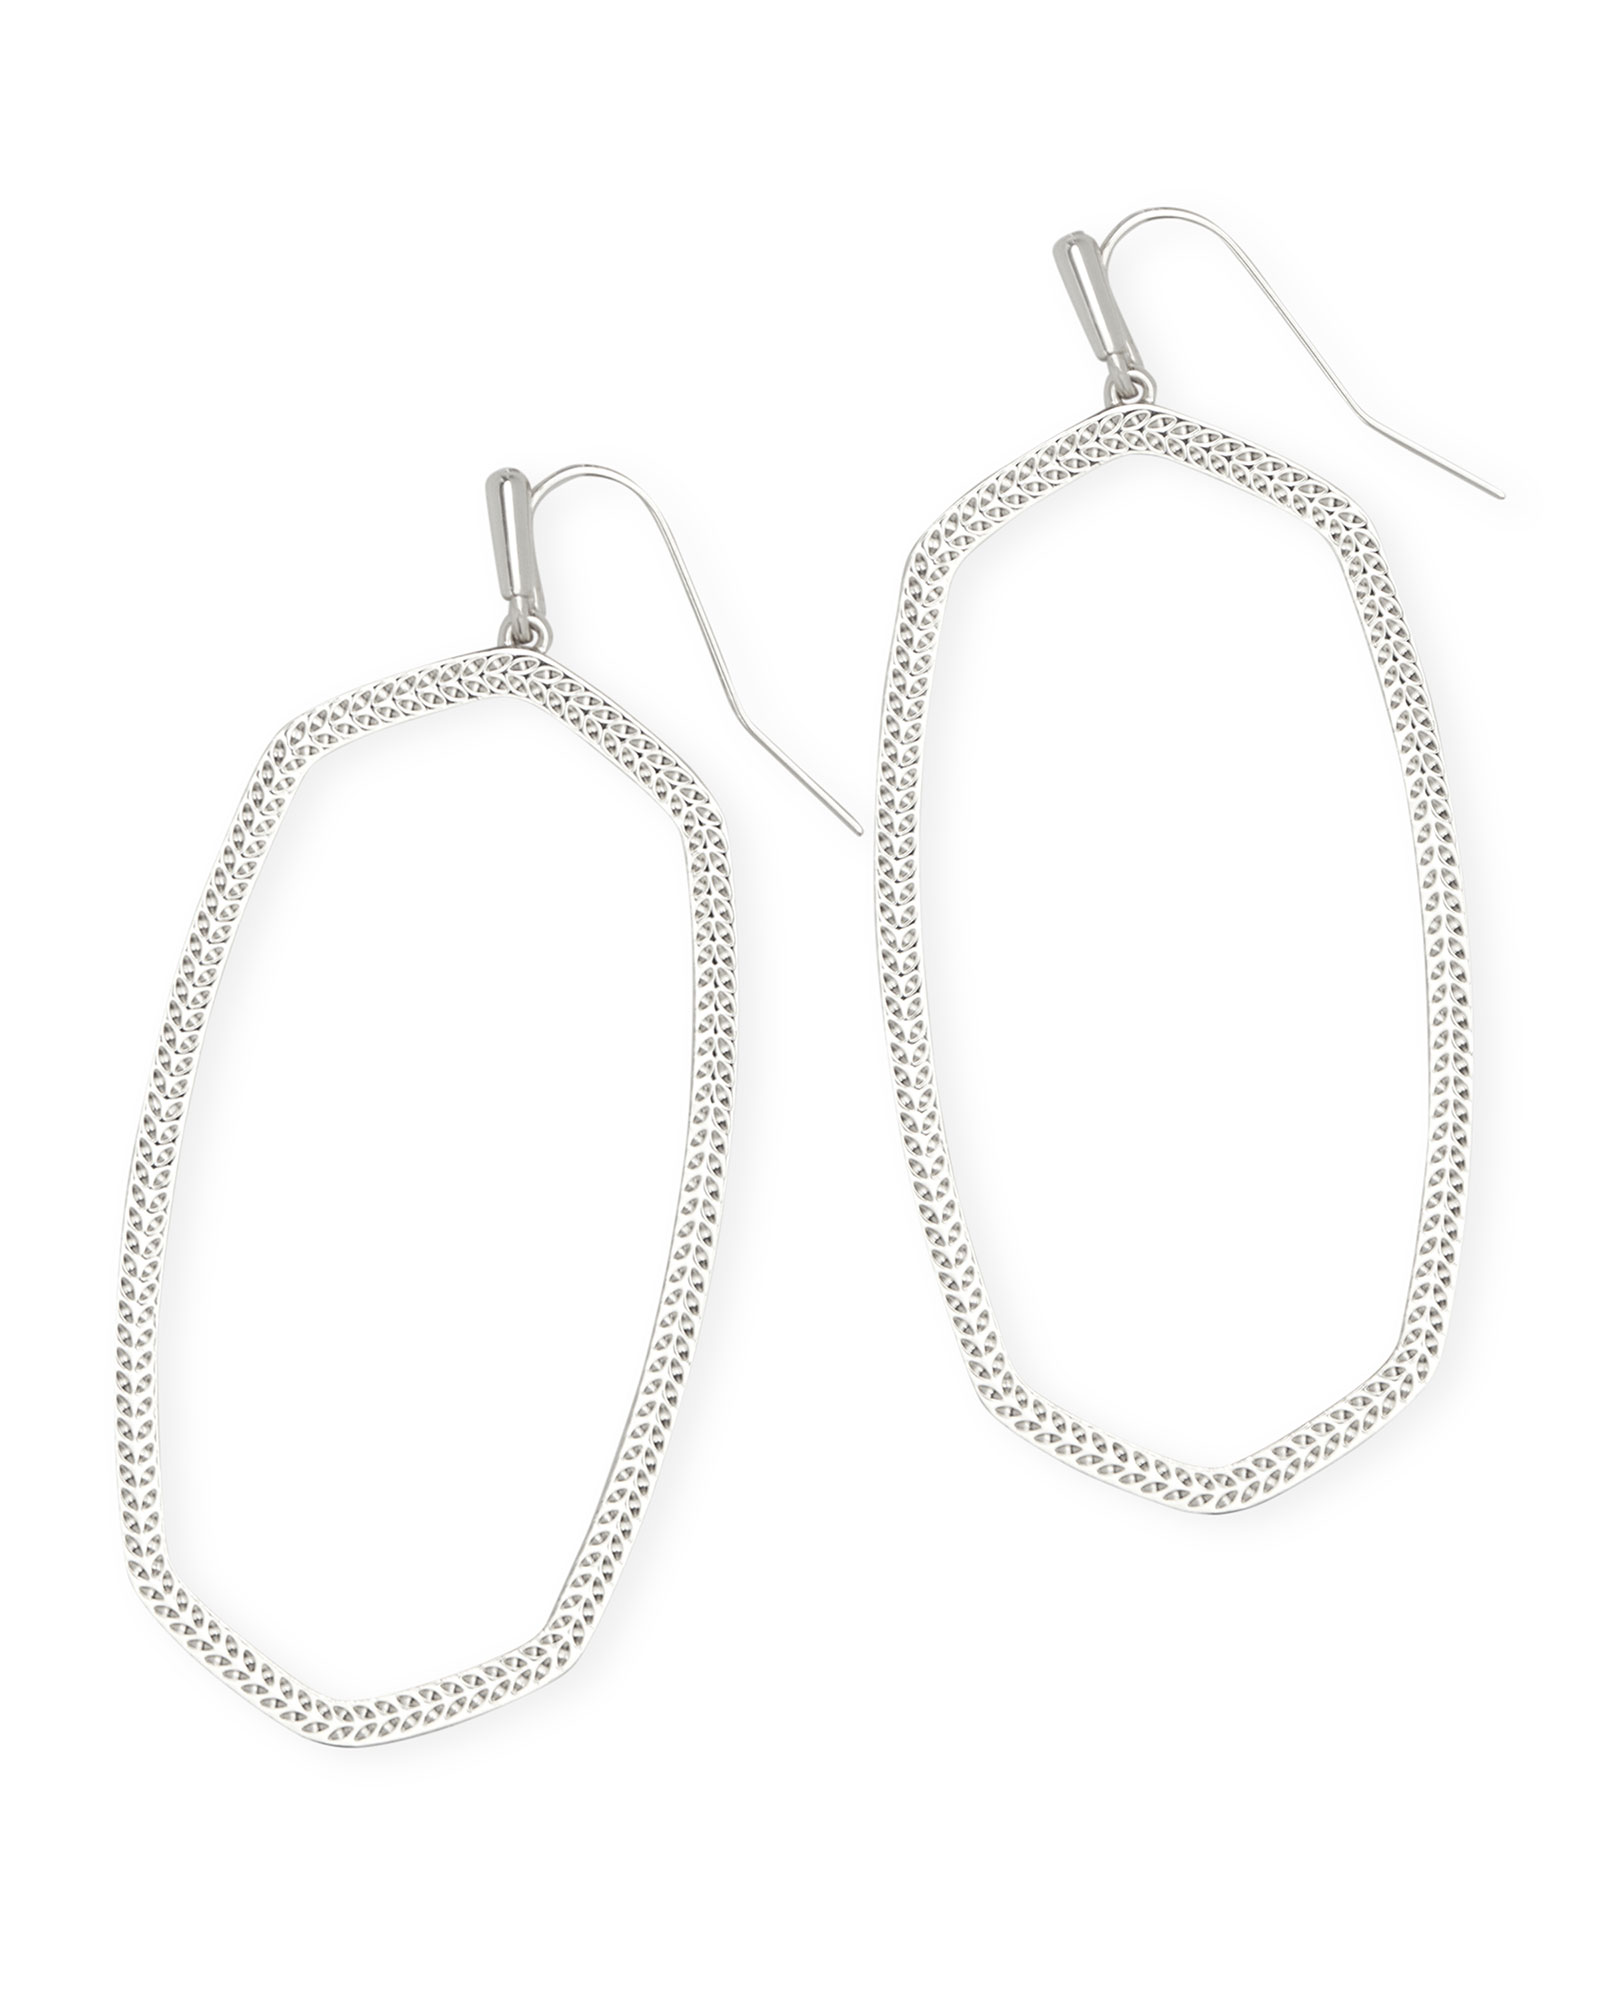 Danielle Open Frame Statement Earrings in Silver